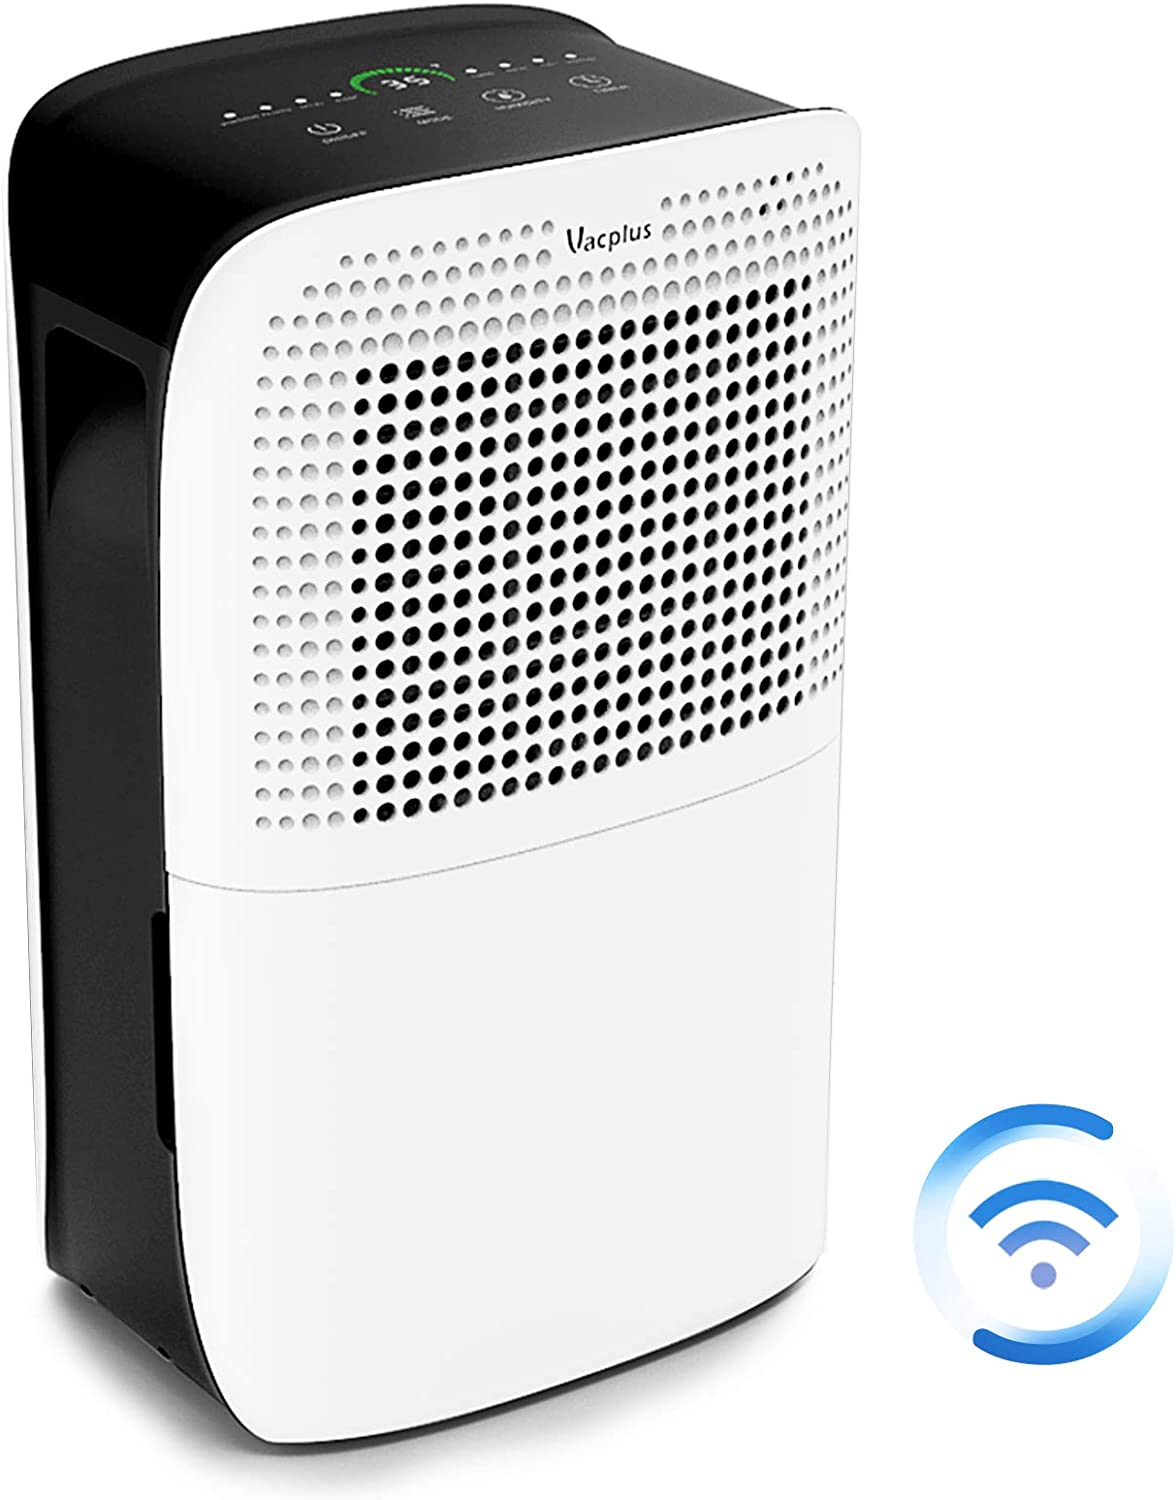 Vacplus 50 Pints Dehumidifier with WiFi Review